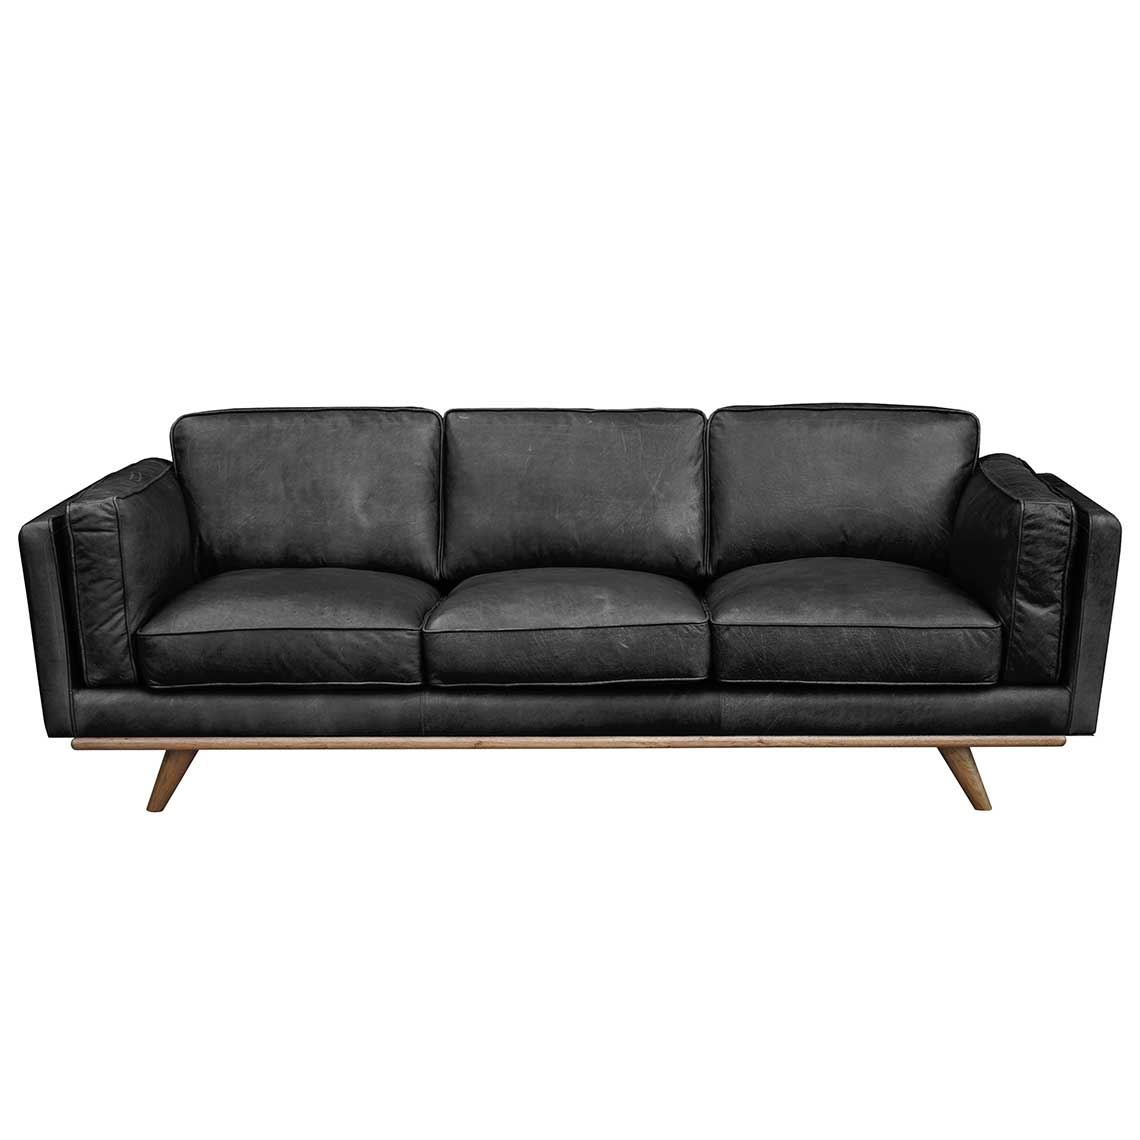 Dahlia 3 Seat Leather Sofa Dahlia 3 Seat Leather Sofa Black Products Leather Sofa Black